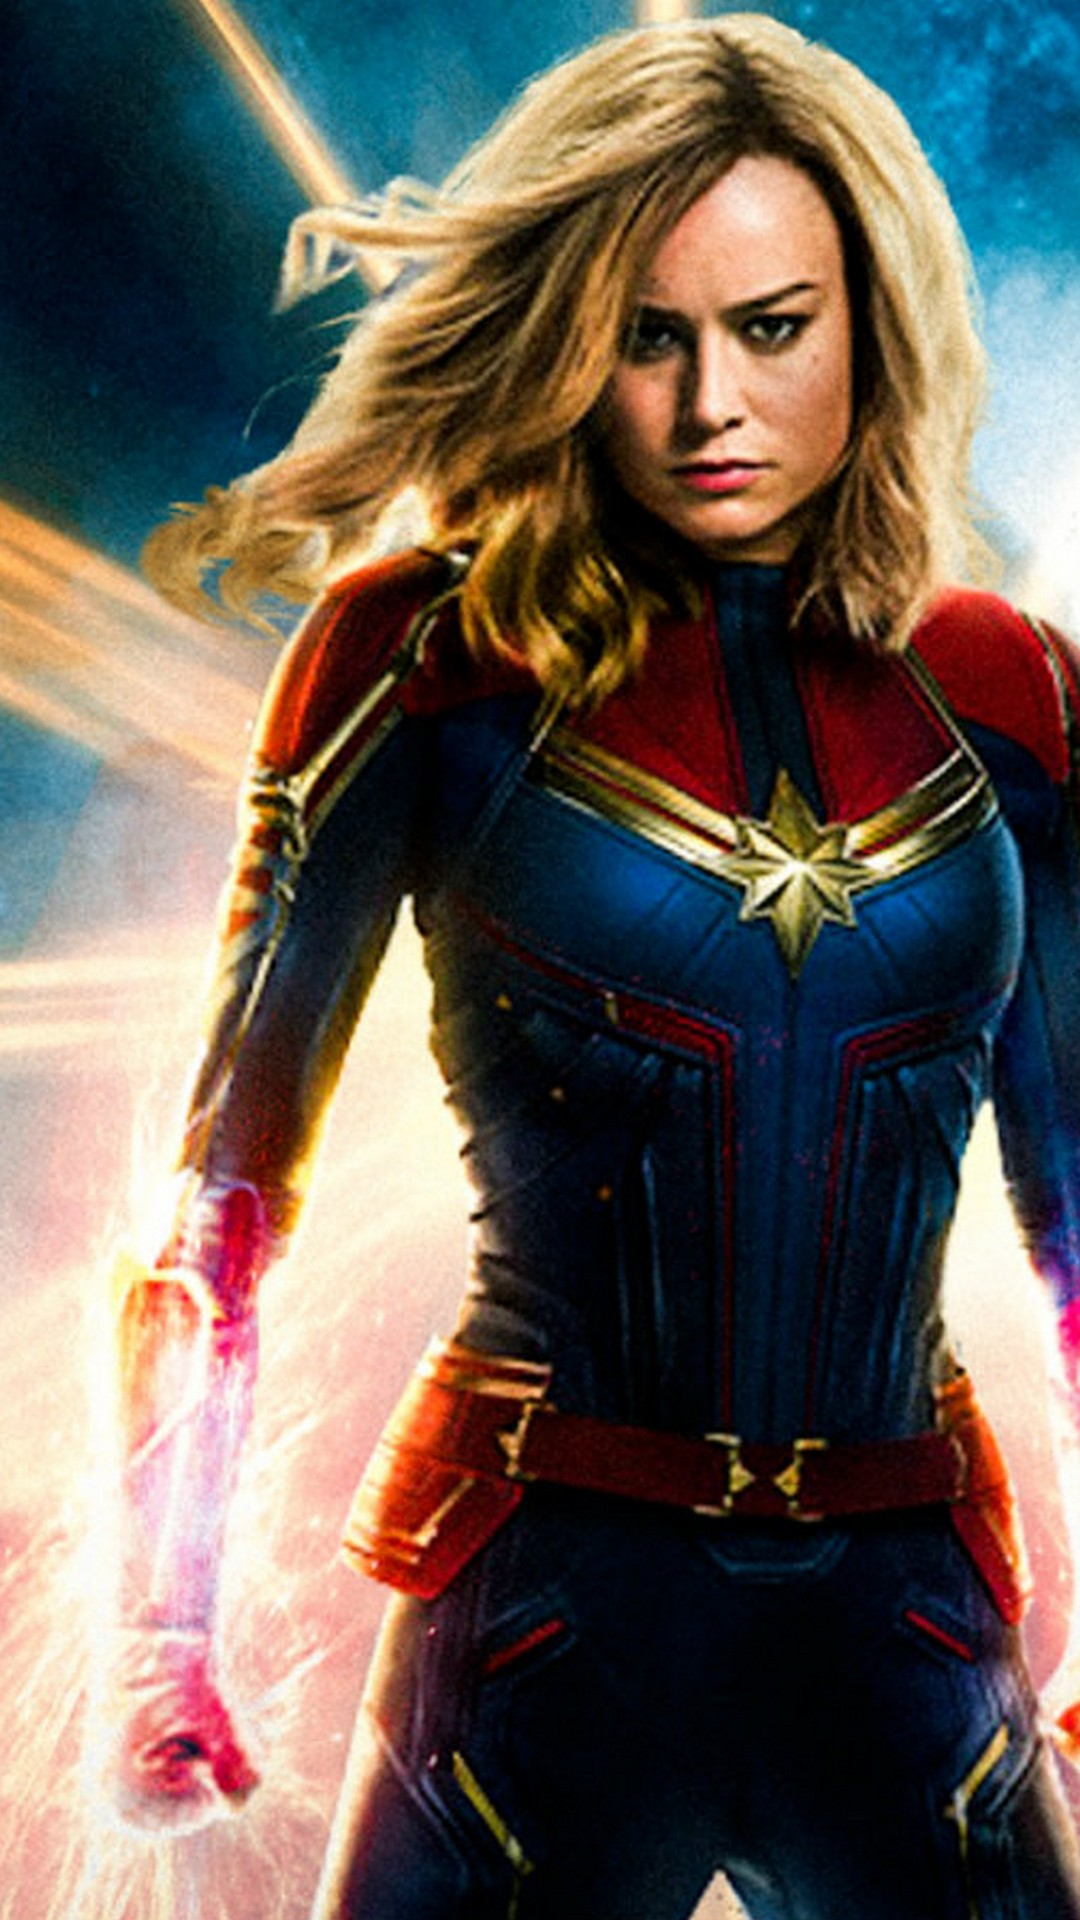 Download - Captain Marvel Full Movie Online , HD Wallpaper & Backgrounds